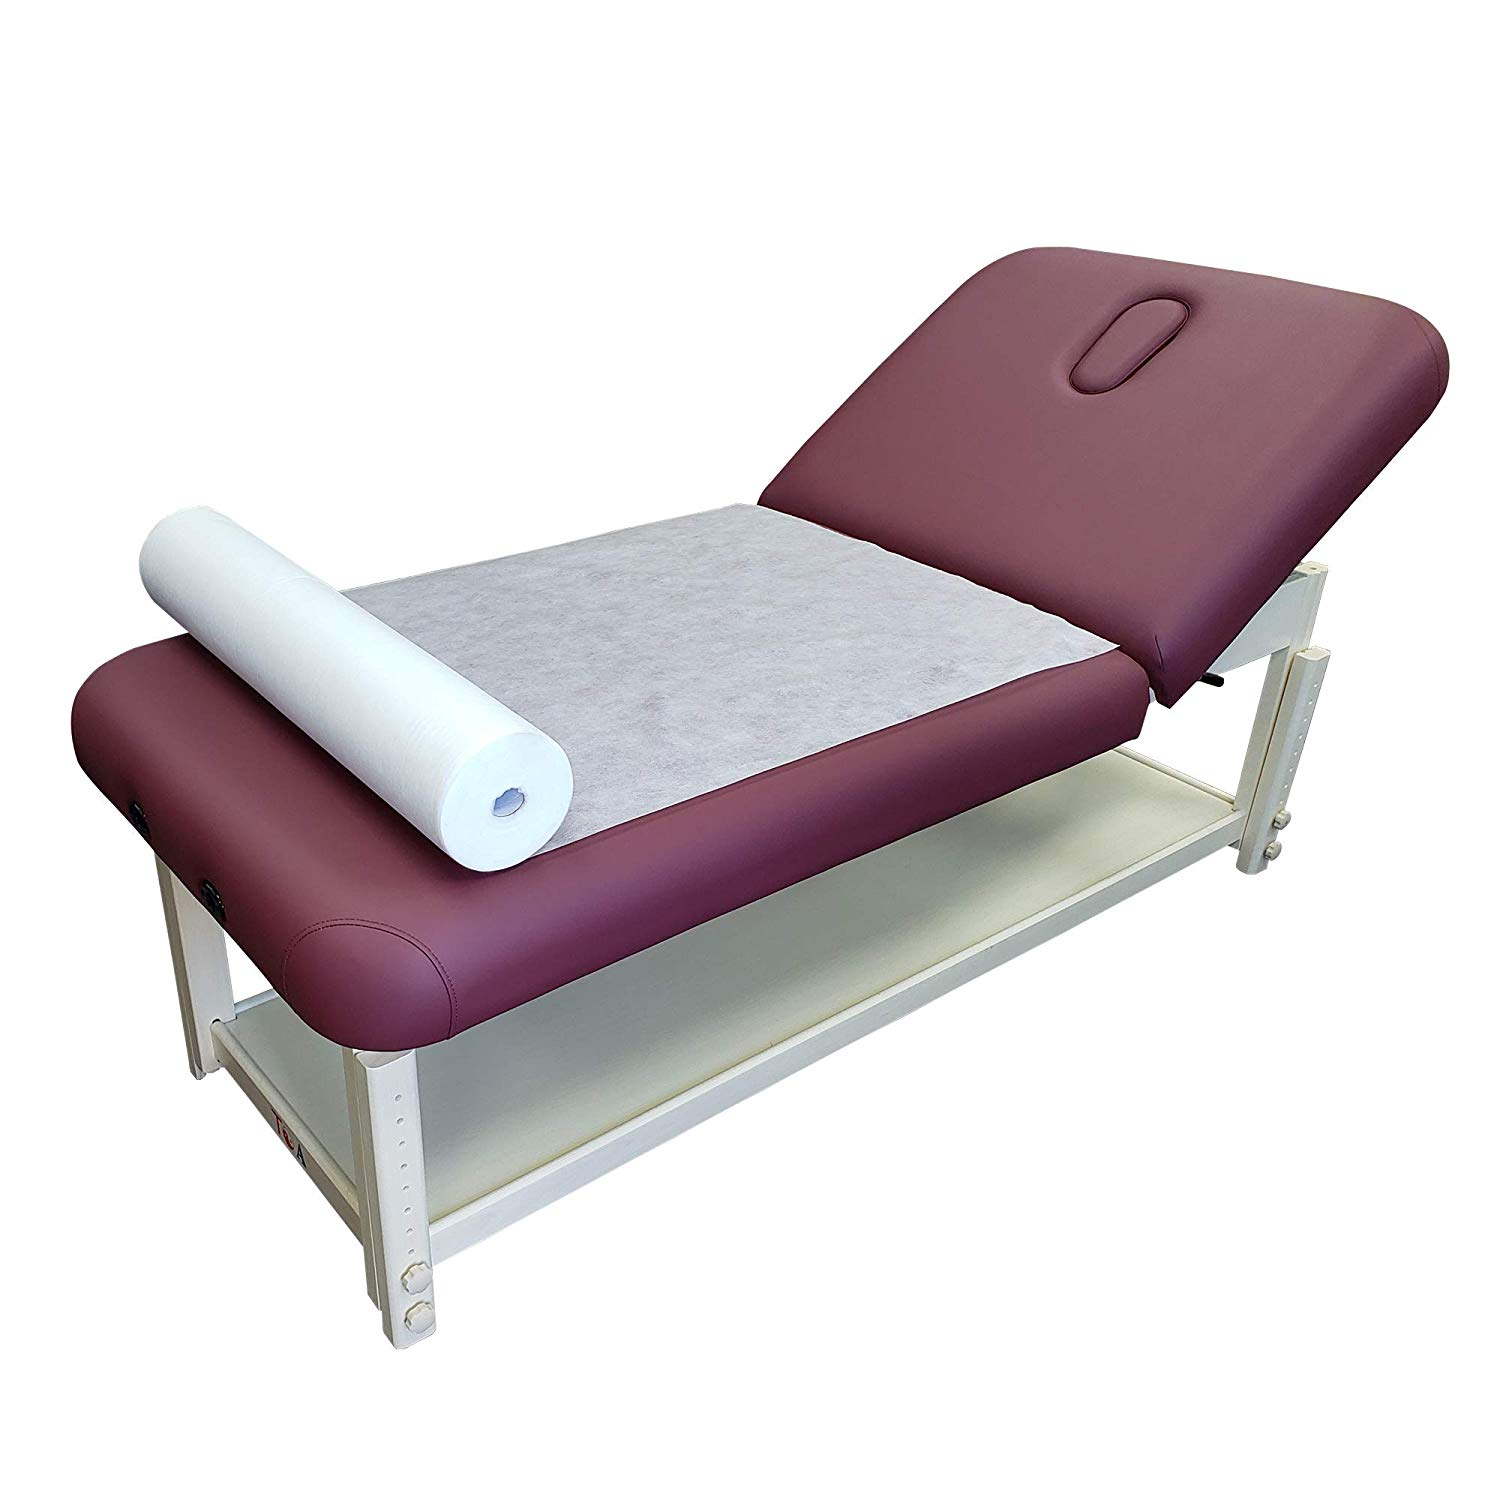 Medical Exam Table Paper In Roll Examination Paper Roll Disposable High Quality Couch Roll